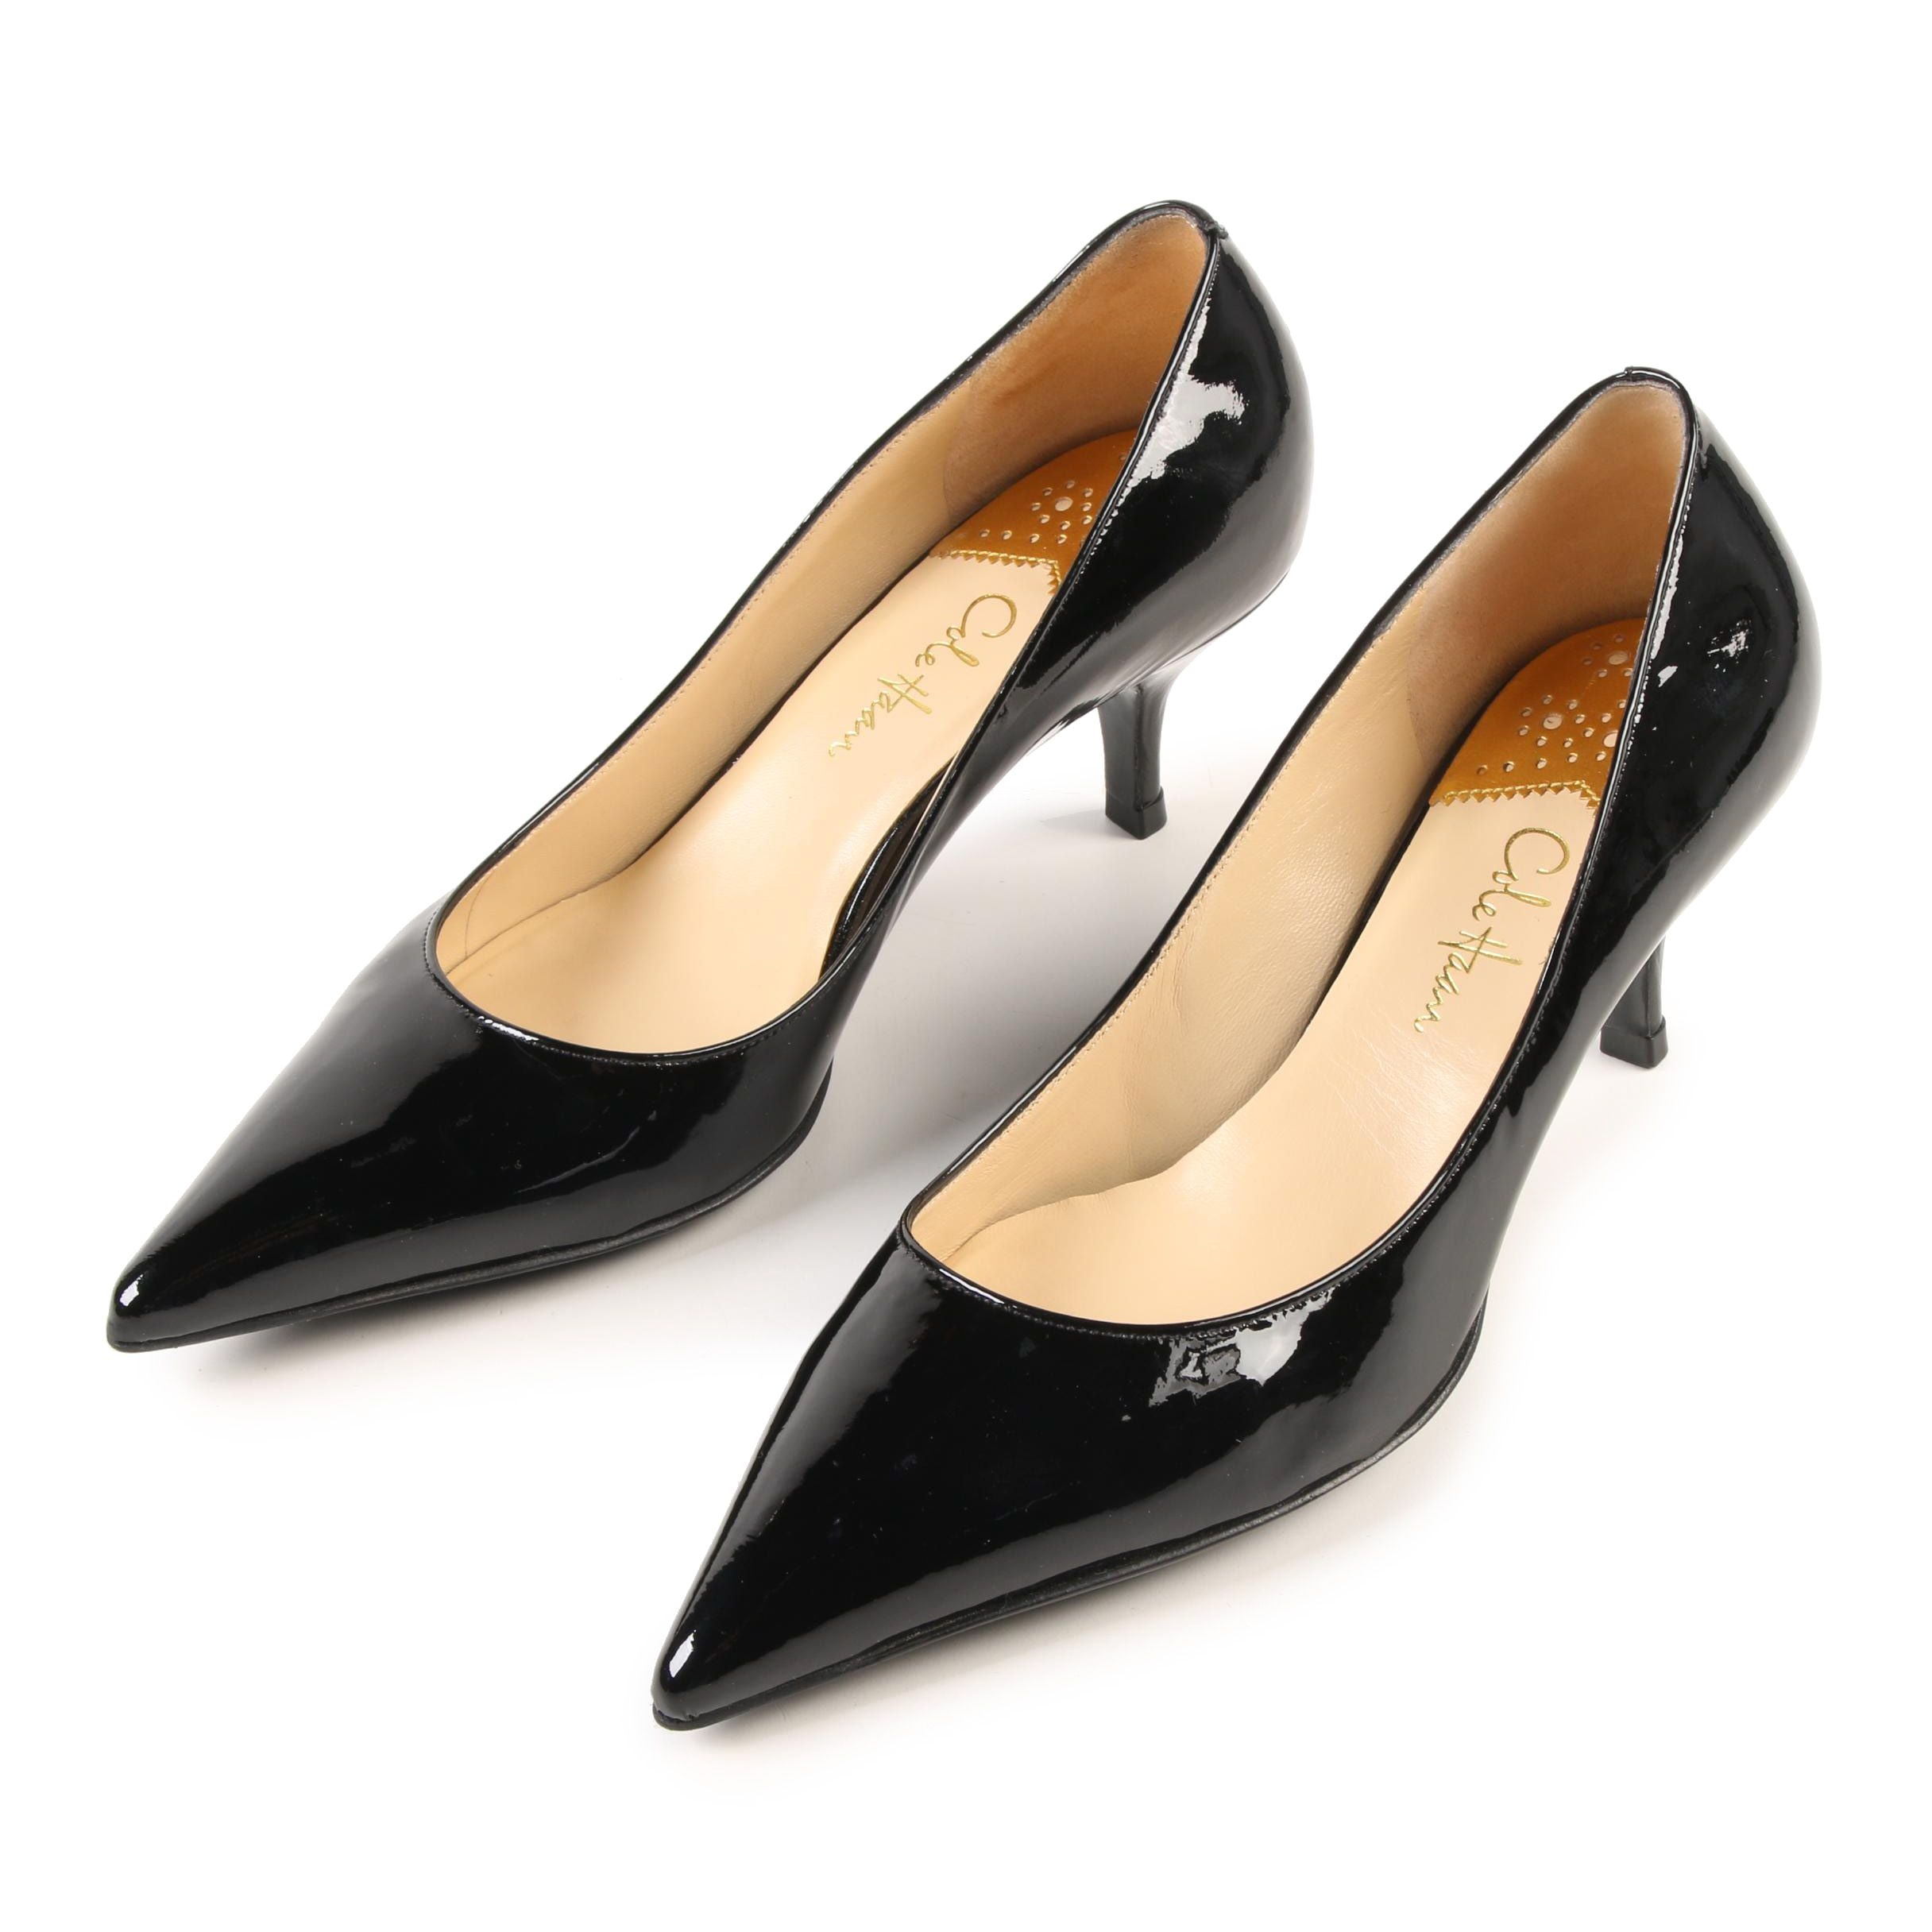 Cole Haan Fiona Low Air Pumps in Black Patent Leather